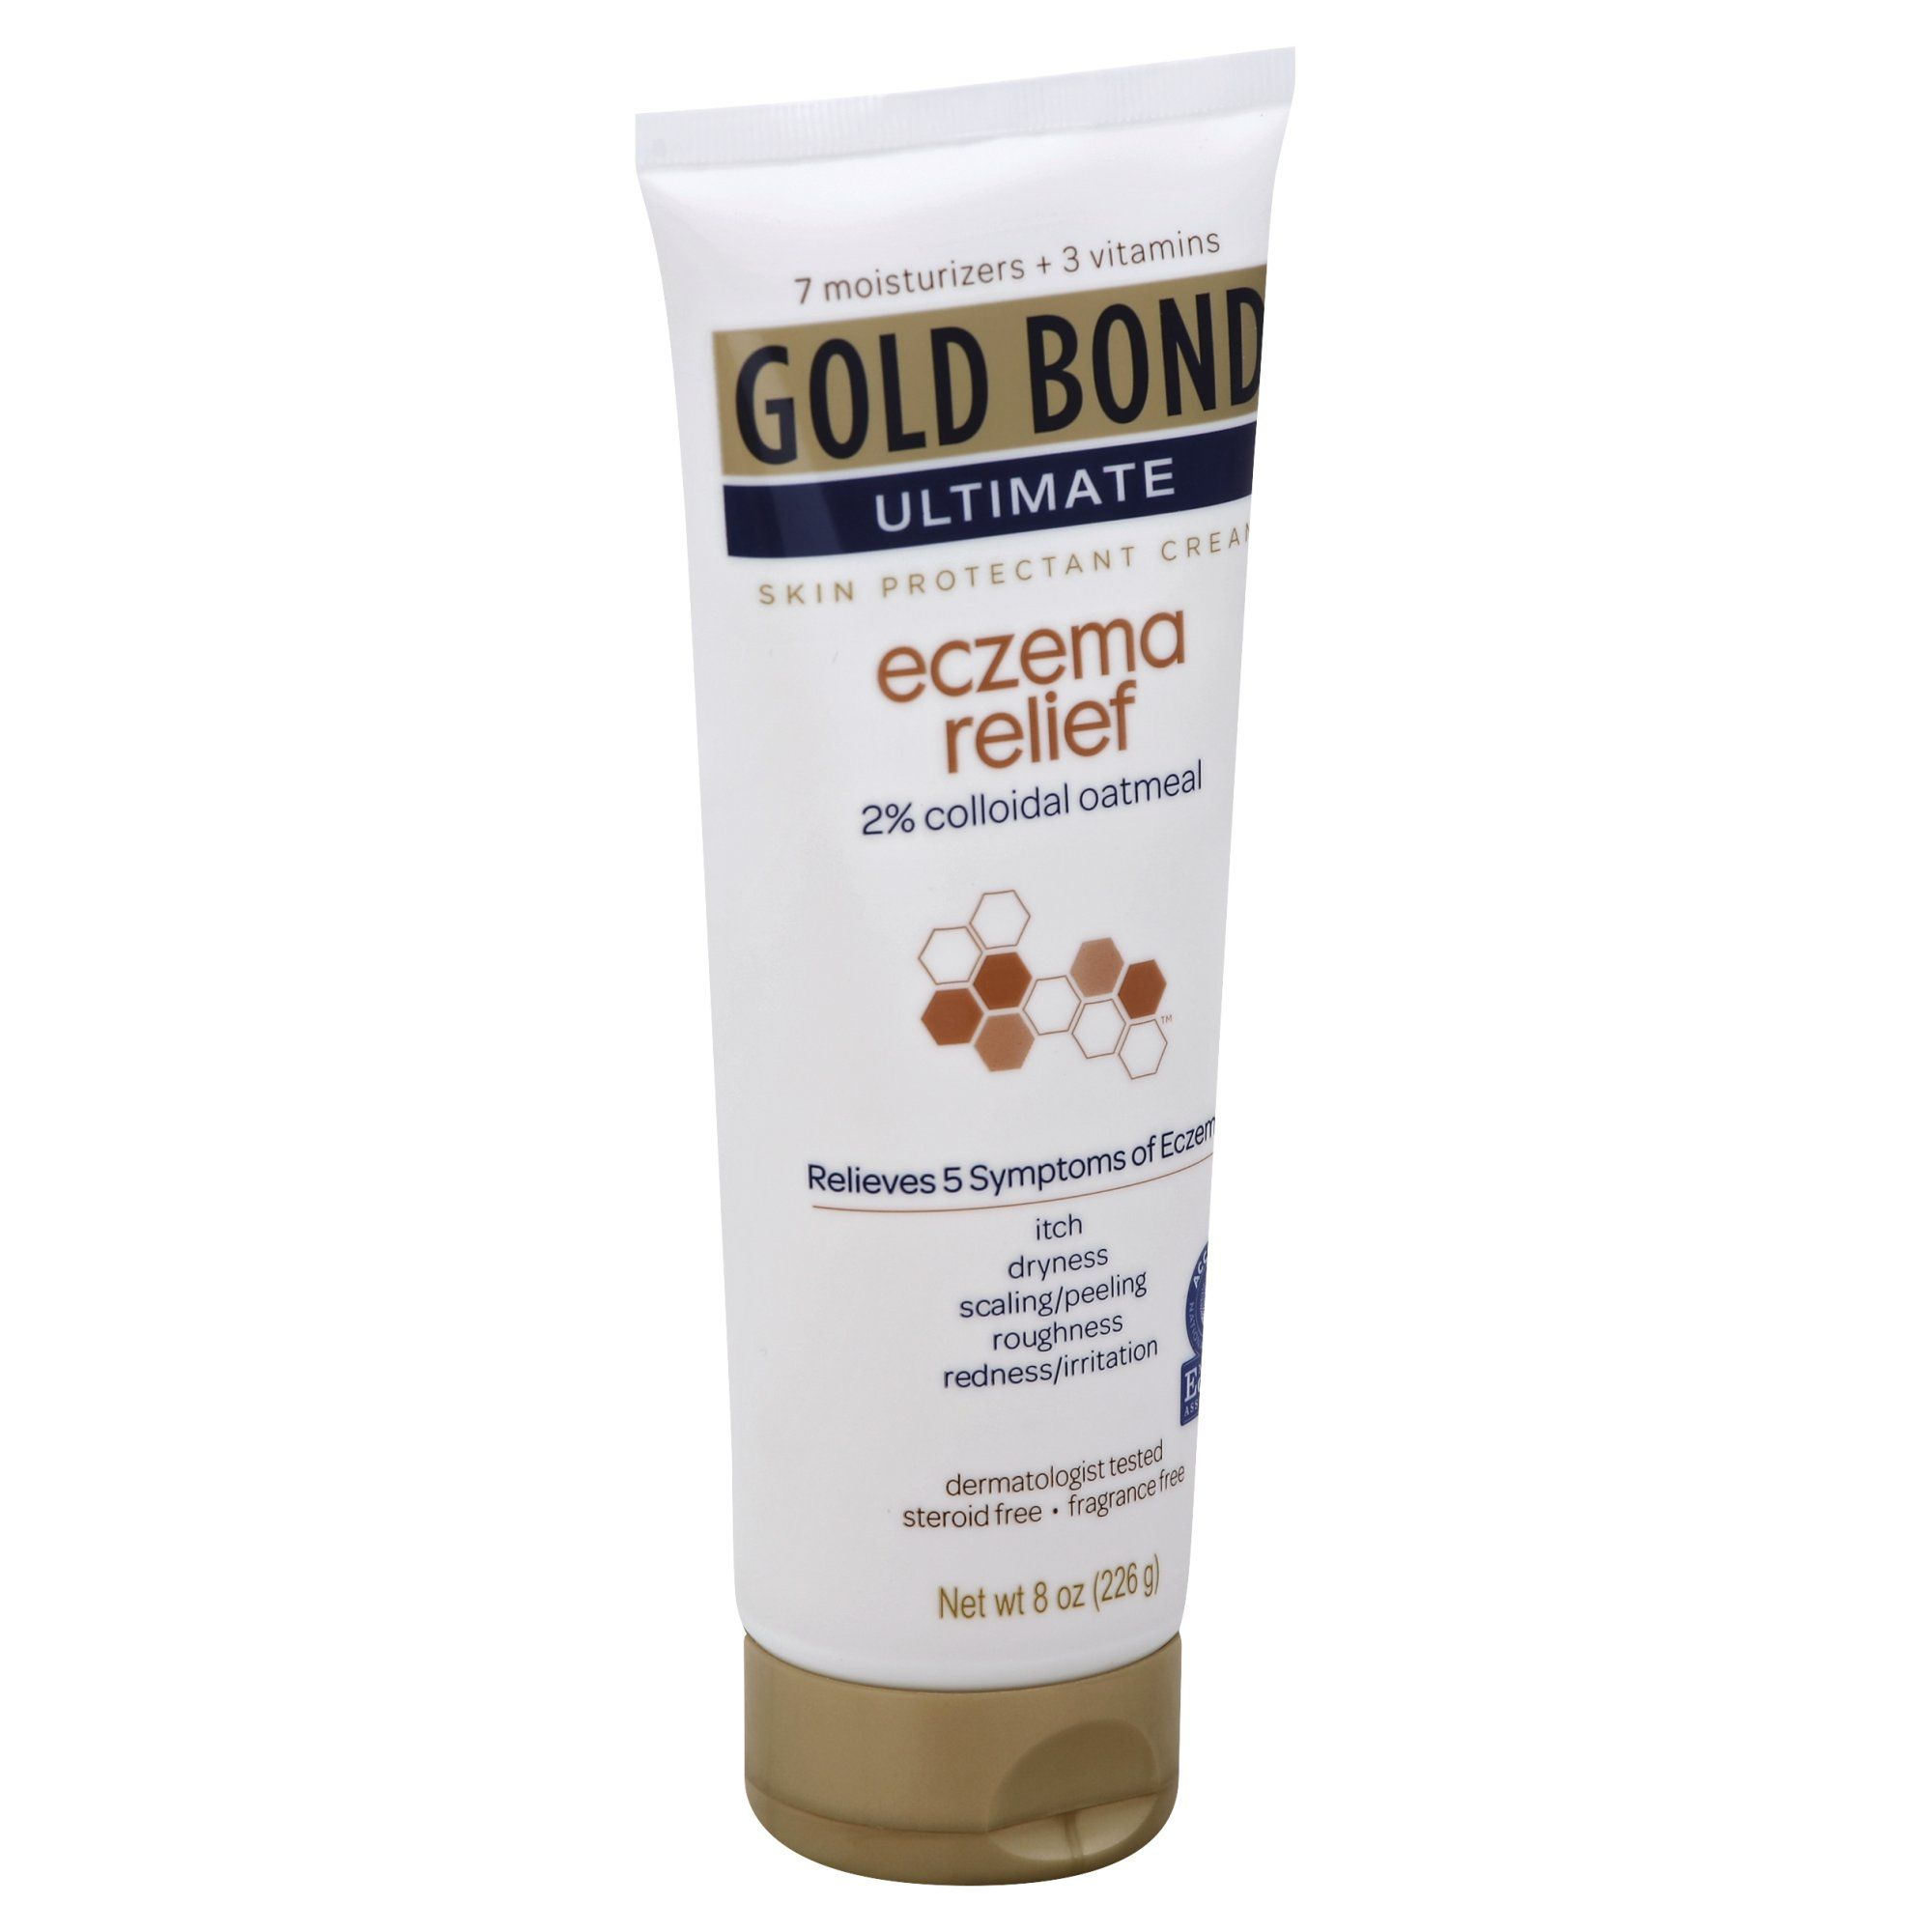 Gold Bond Ultimate Eczema Skin Cream 8 Oz Ultimate Aff Affiliate Eczema Gold Ad Eczema Relief Eczema Skin Protection